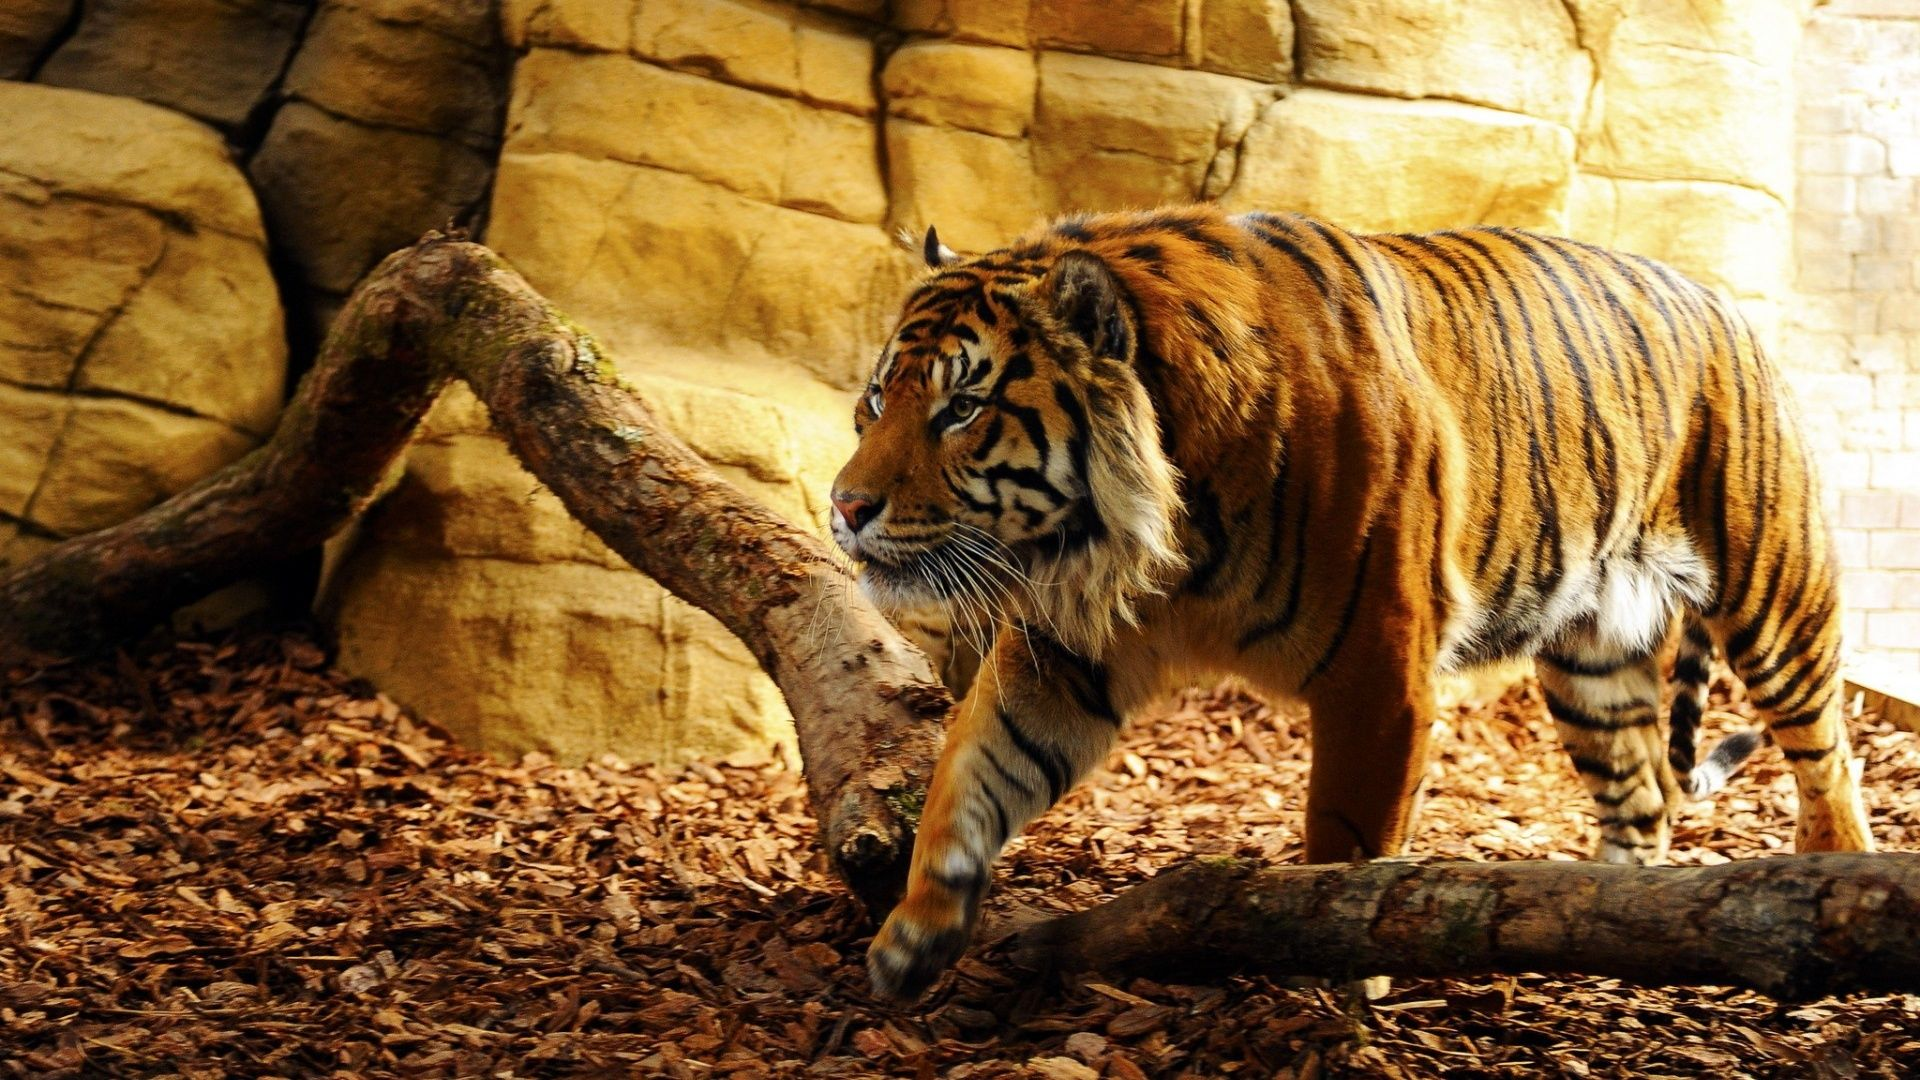 Tiger 19201080 Small Plates Tiger wallpaper Tiger pictures 1920x1080